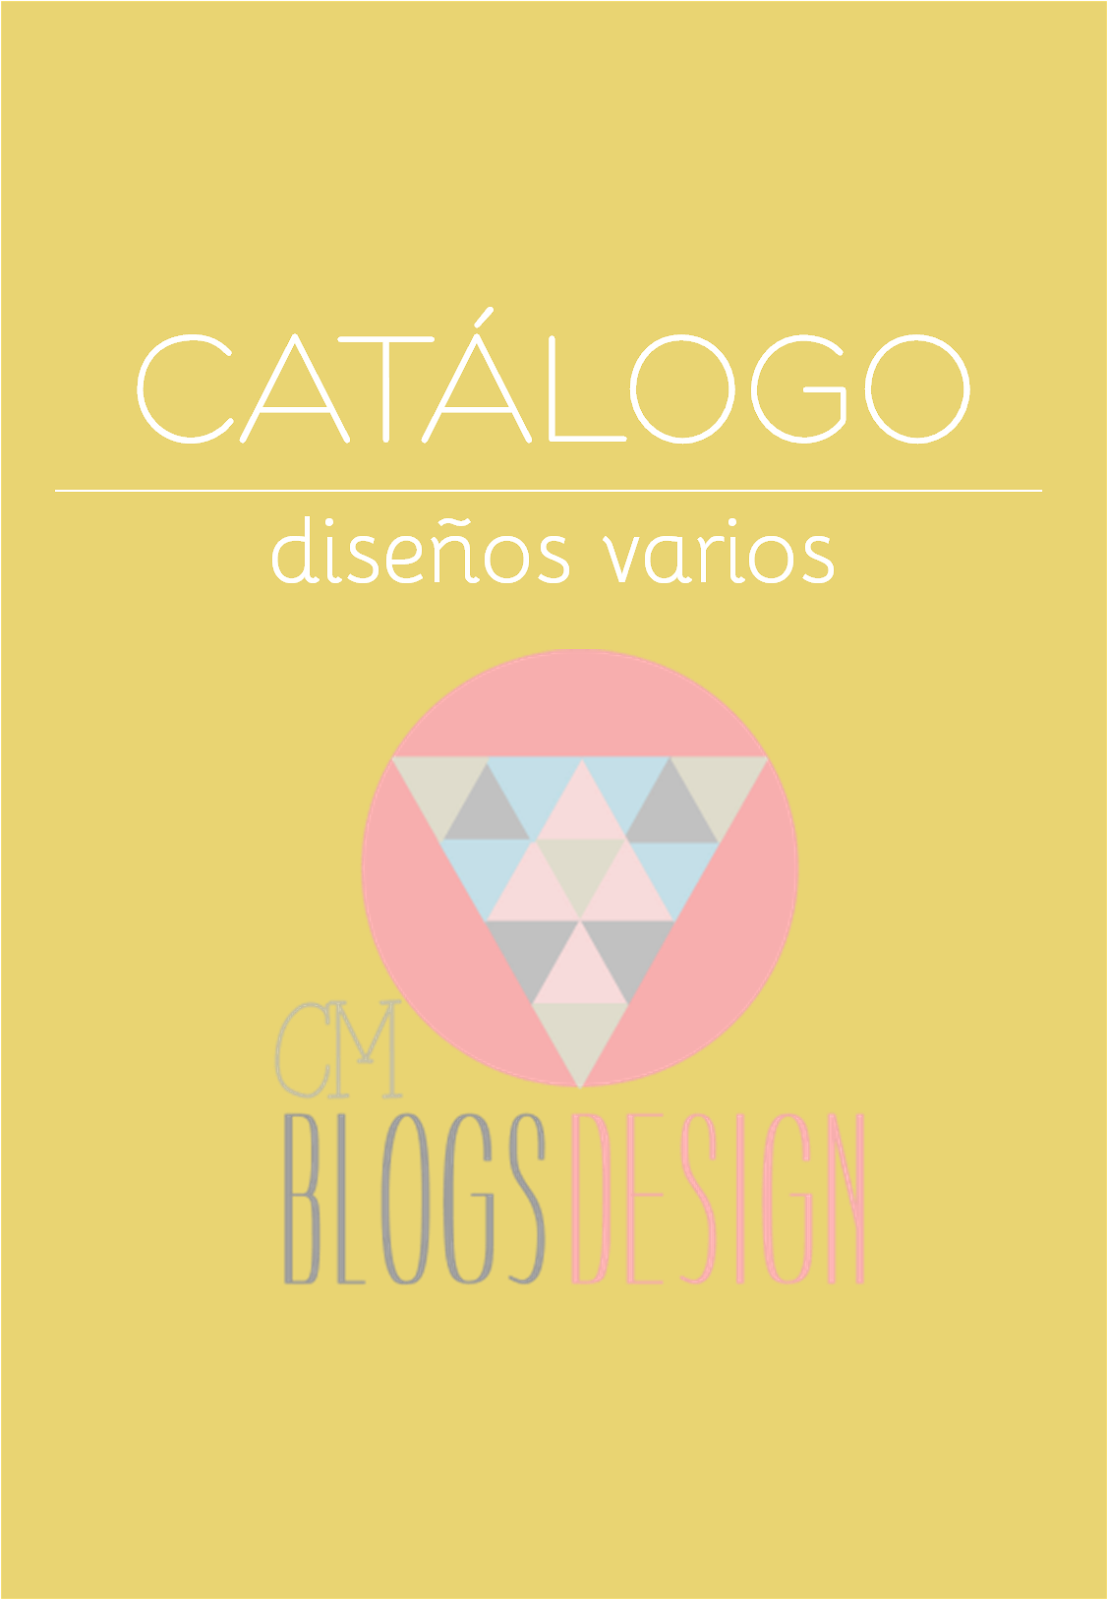 hacer catalogos online